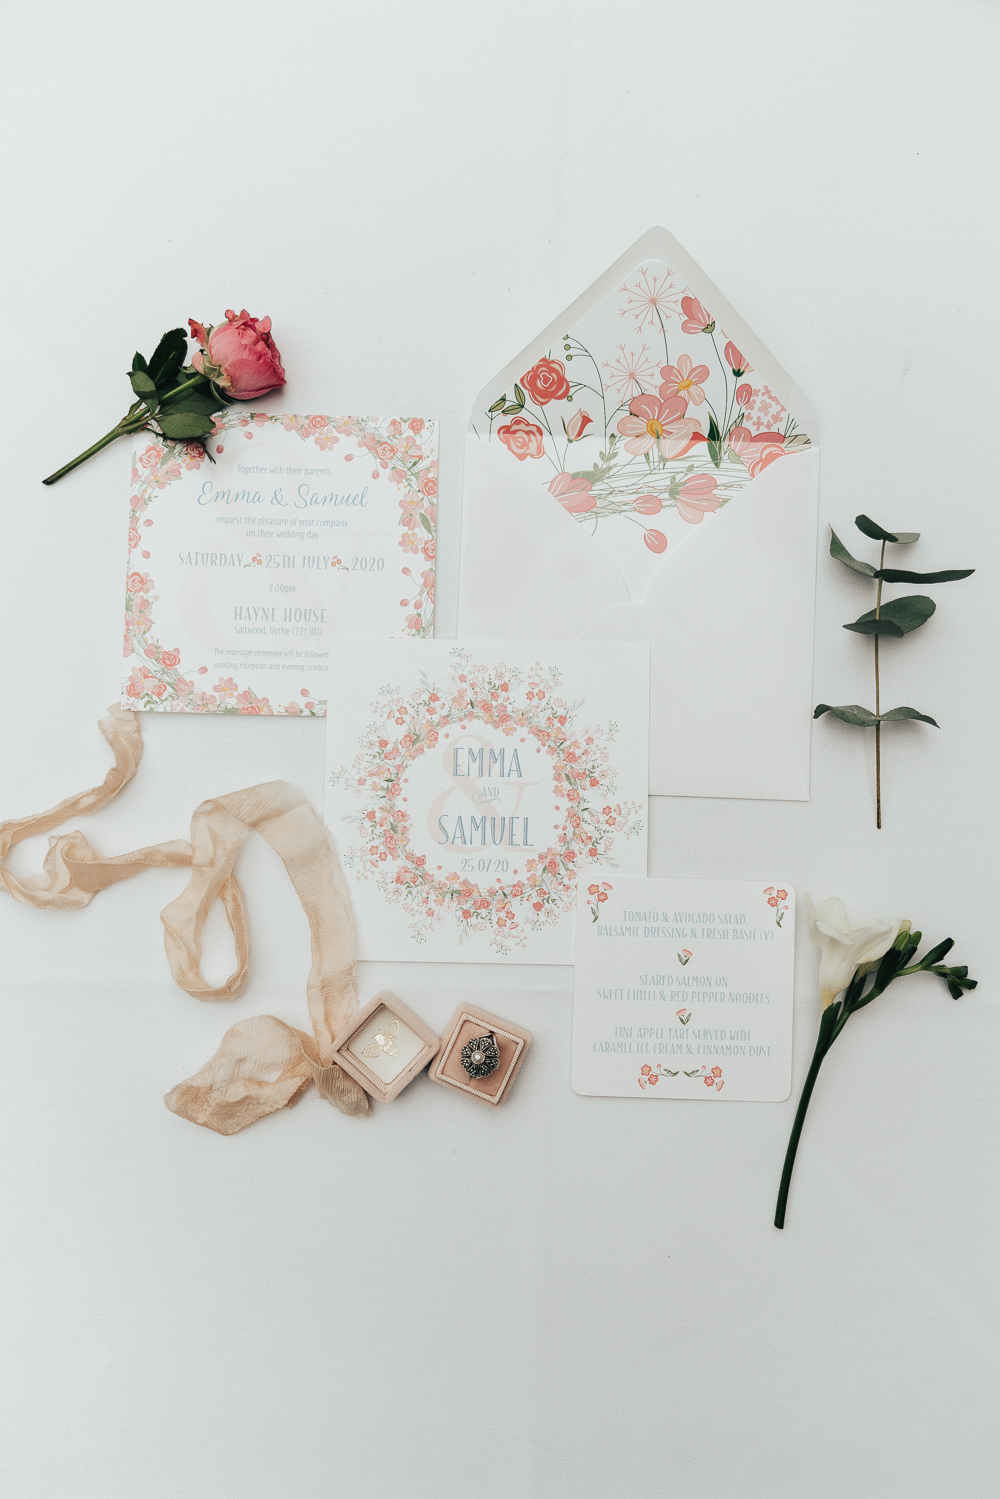 Stationery Invites Invitations Flat Lay Ribbon Flowers Floral Envelope Hoop Wedding Ideas Rebecca Carpenter Photography